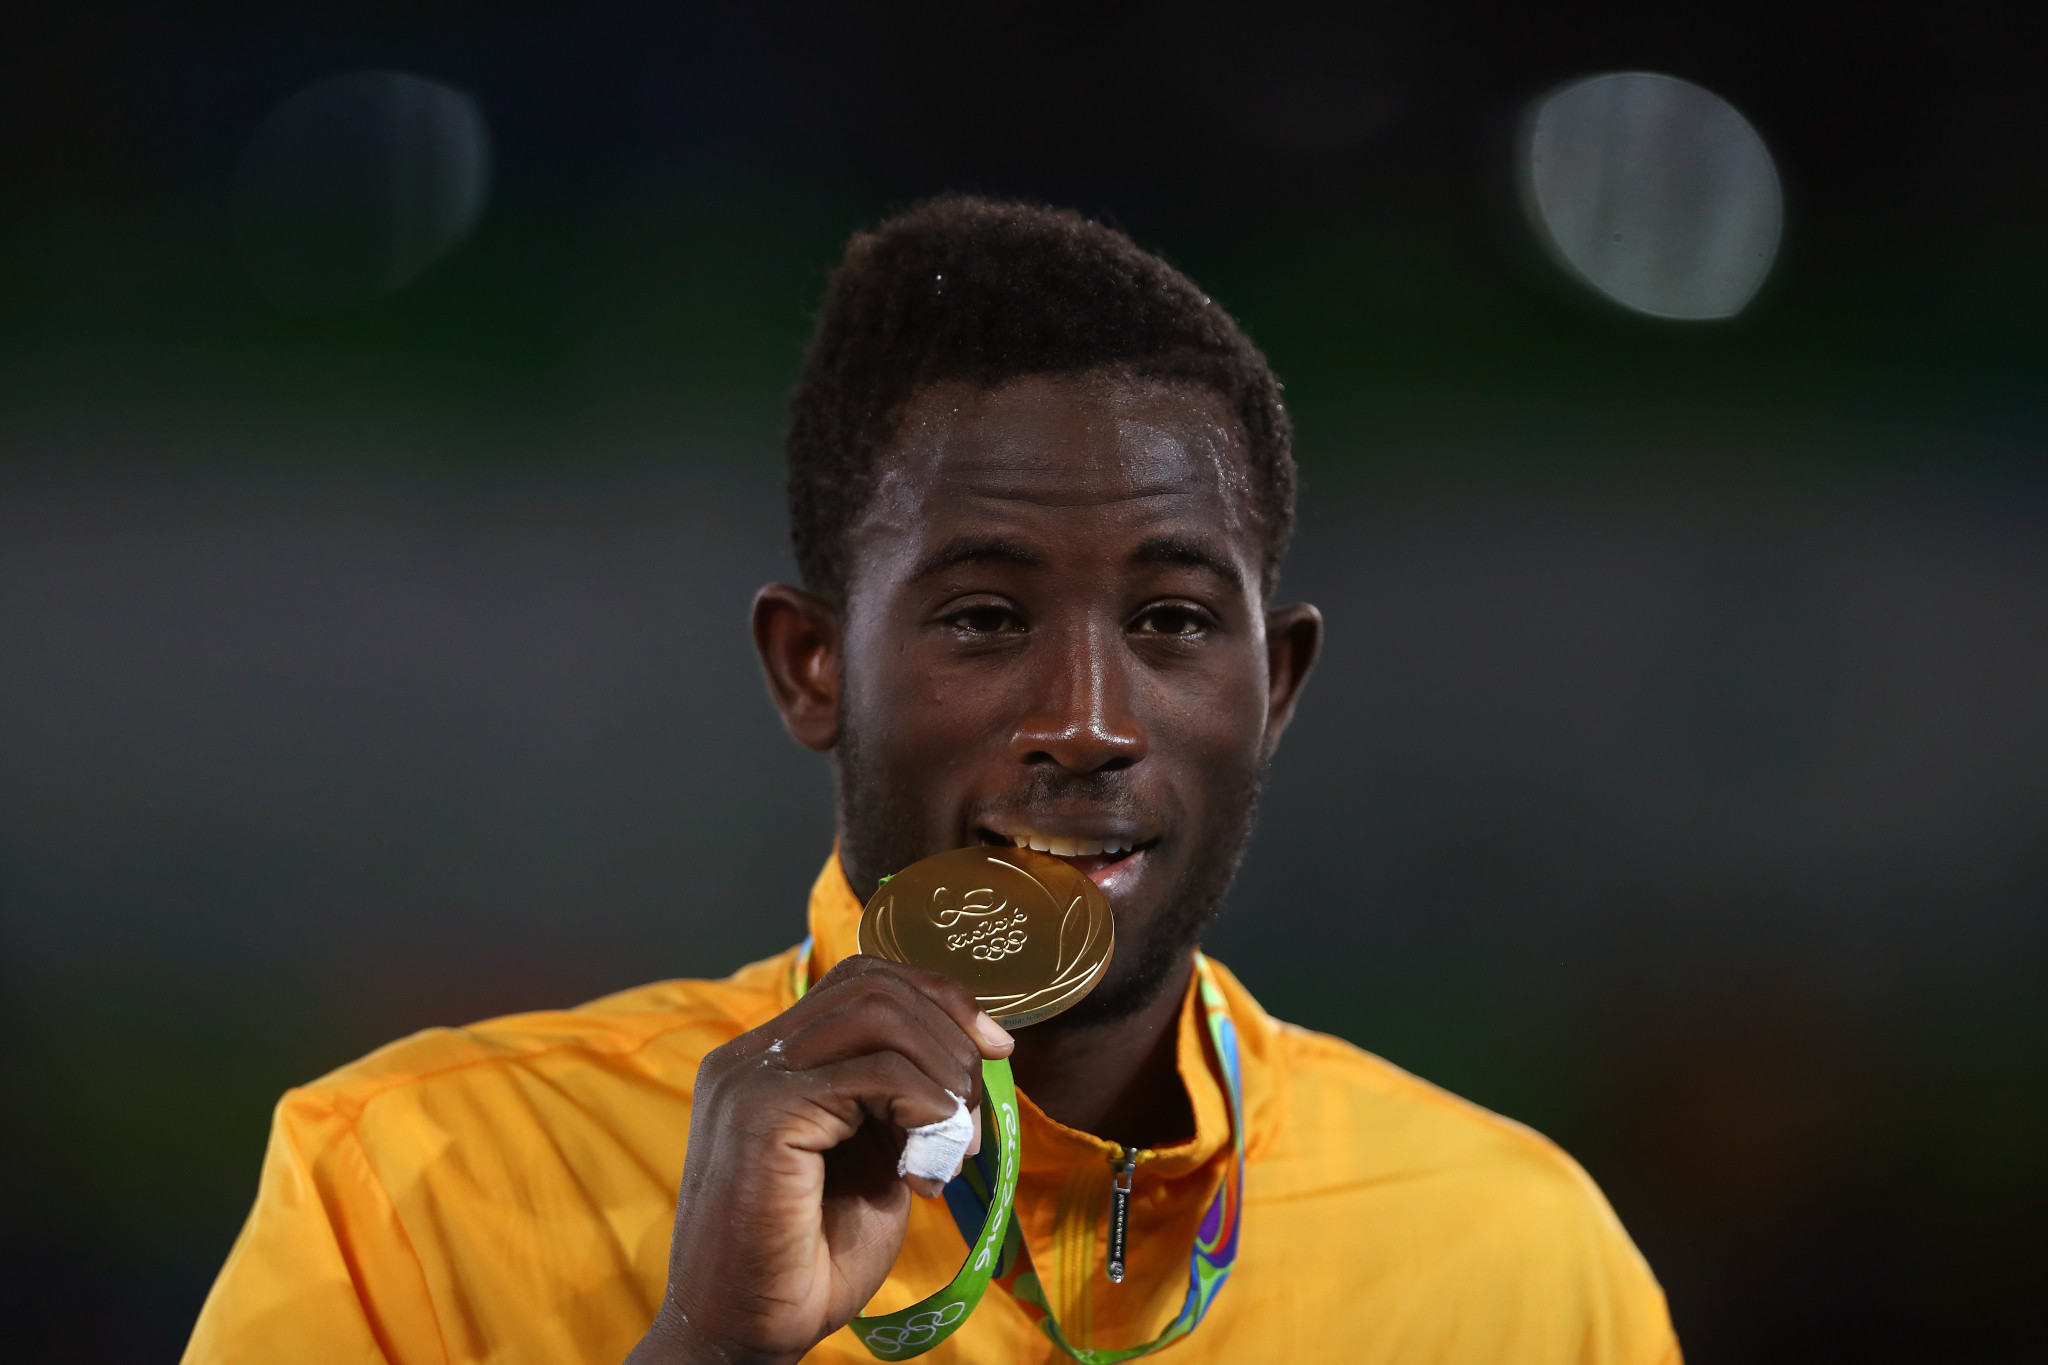 Cheick Sallah Cissé will defend his Olympic title in Tokyo ©Getty Images